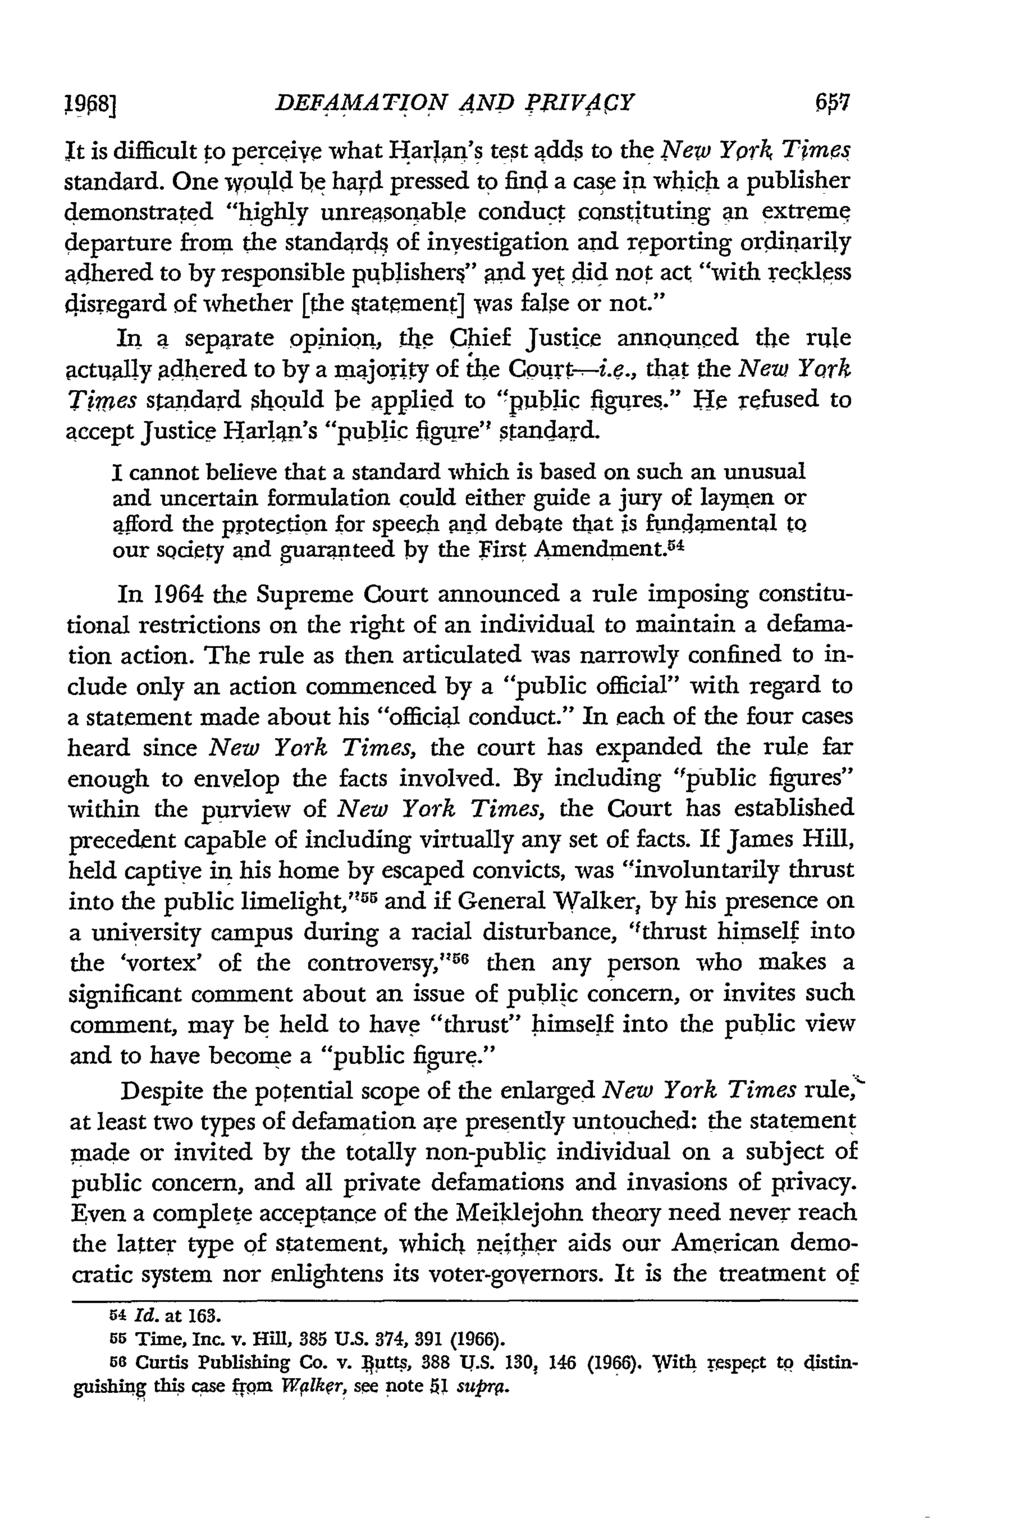 1908] DEFAMATION AND PRIVACY It is difficult to perceive what Harlan's test adds to the New YPrA Times standard.